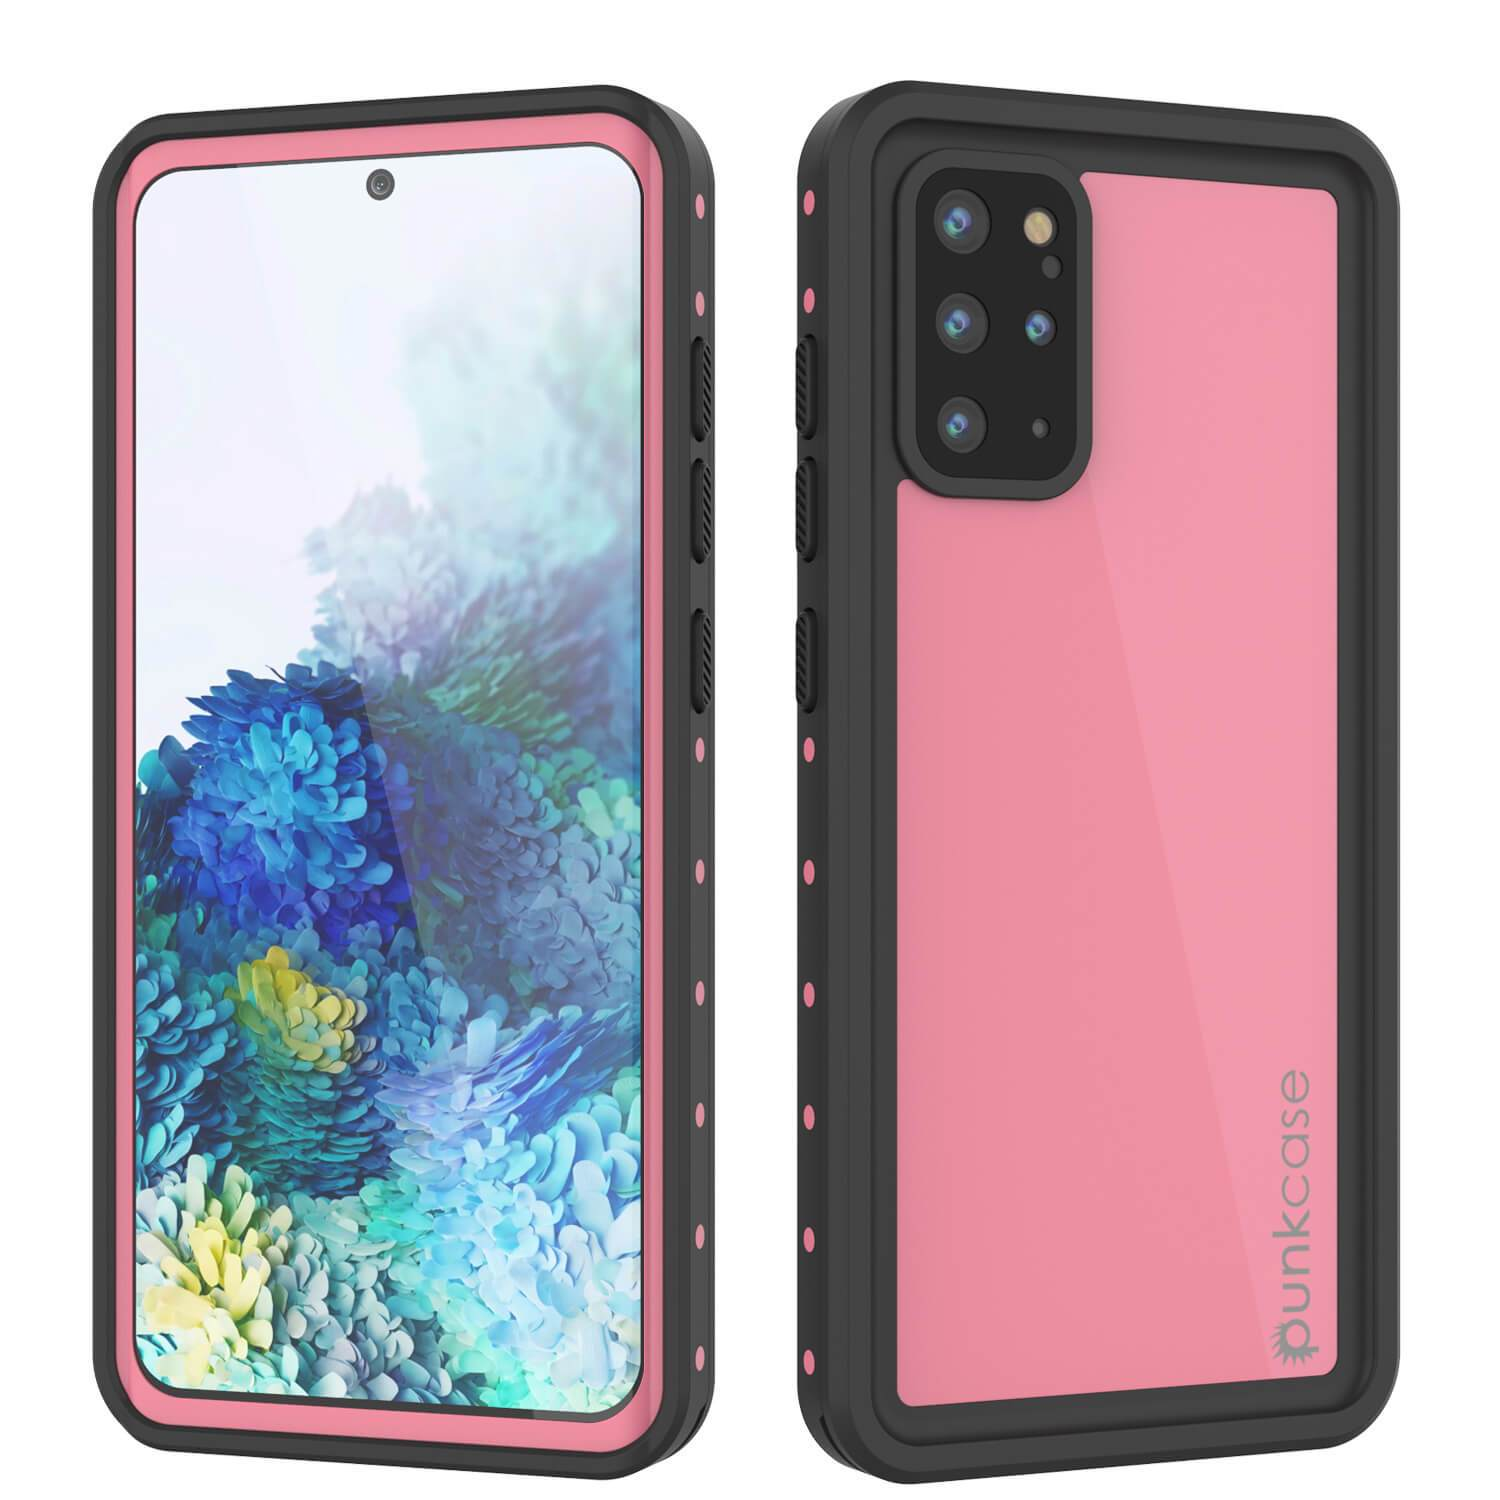 Galaxy S20+ Plus Waterproof Case PunkCase StudStar Pink Thin 6.6ft Underwater IP68 Shock/Snow Proof